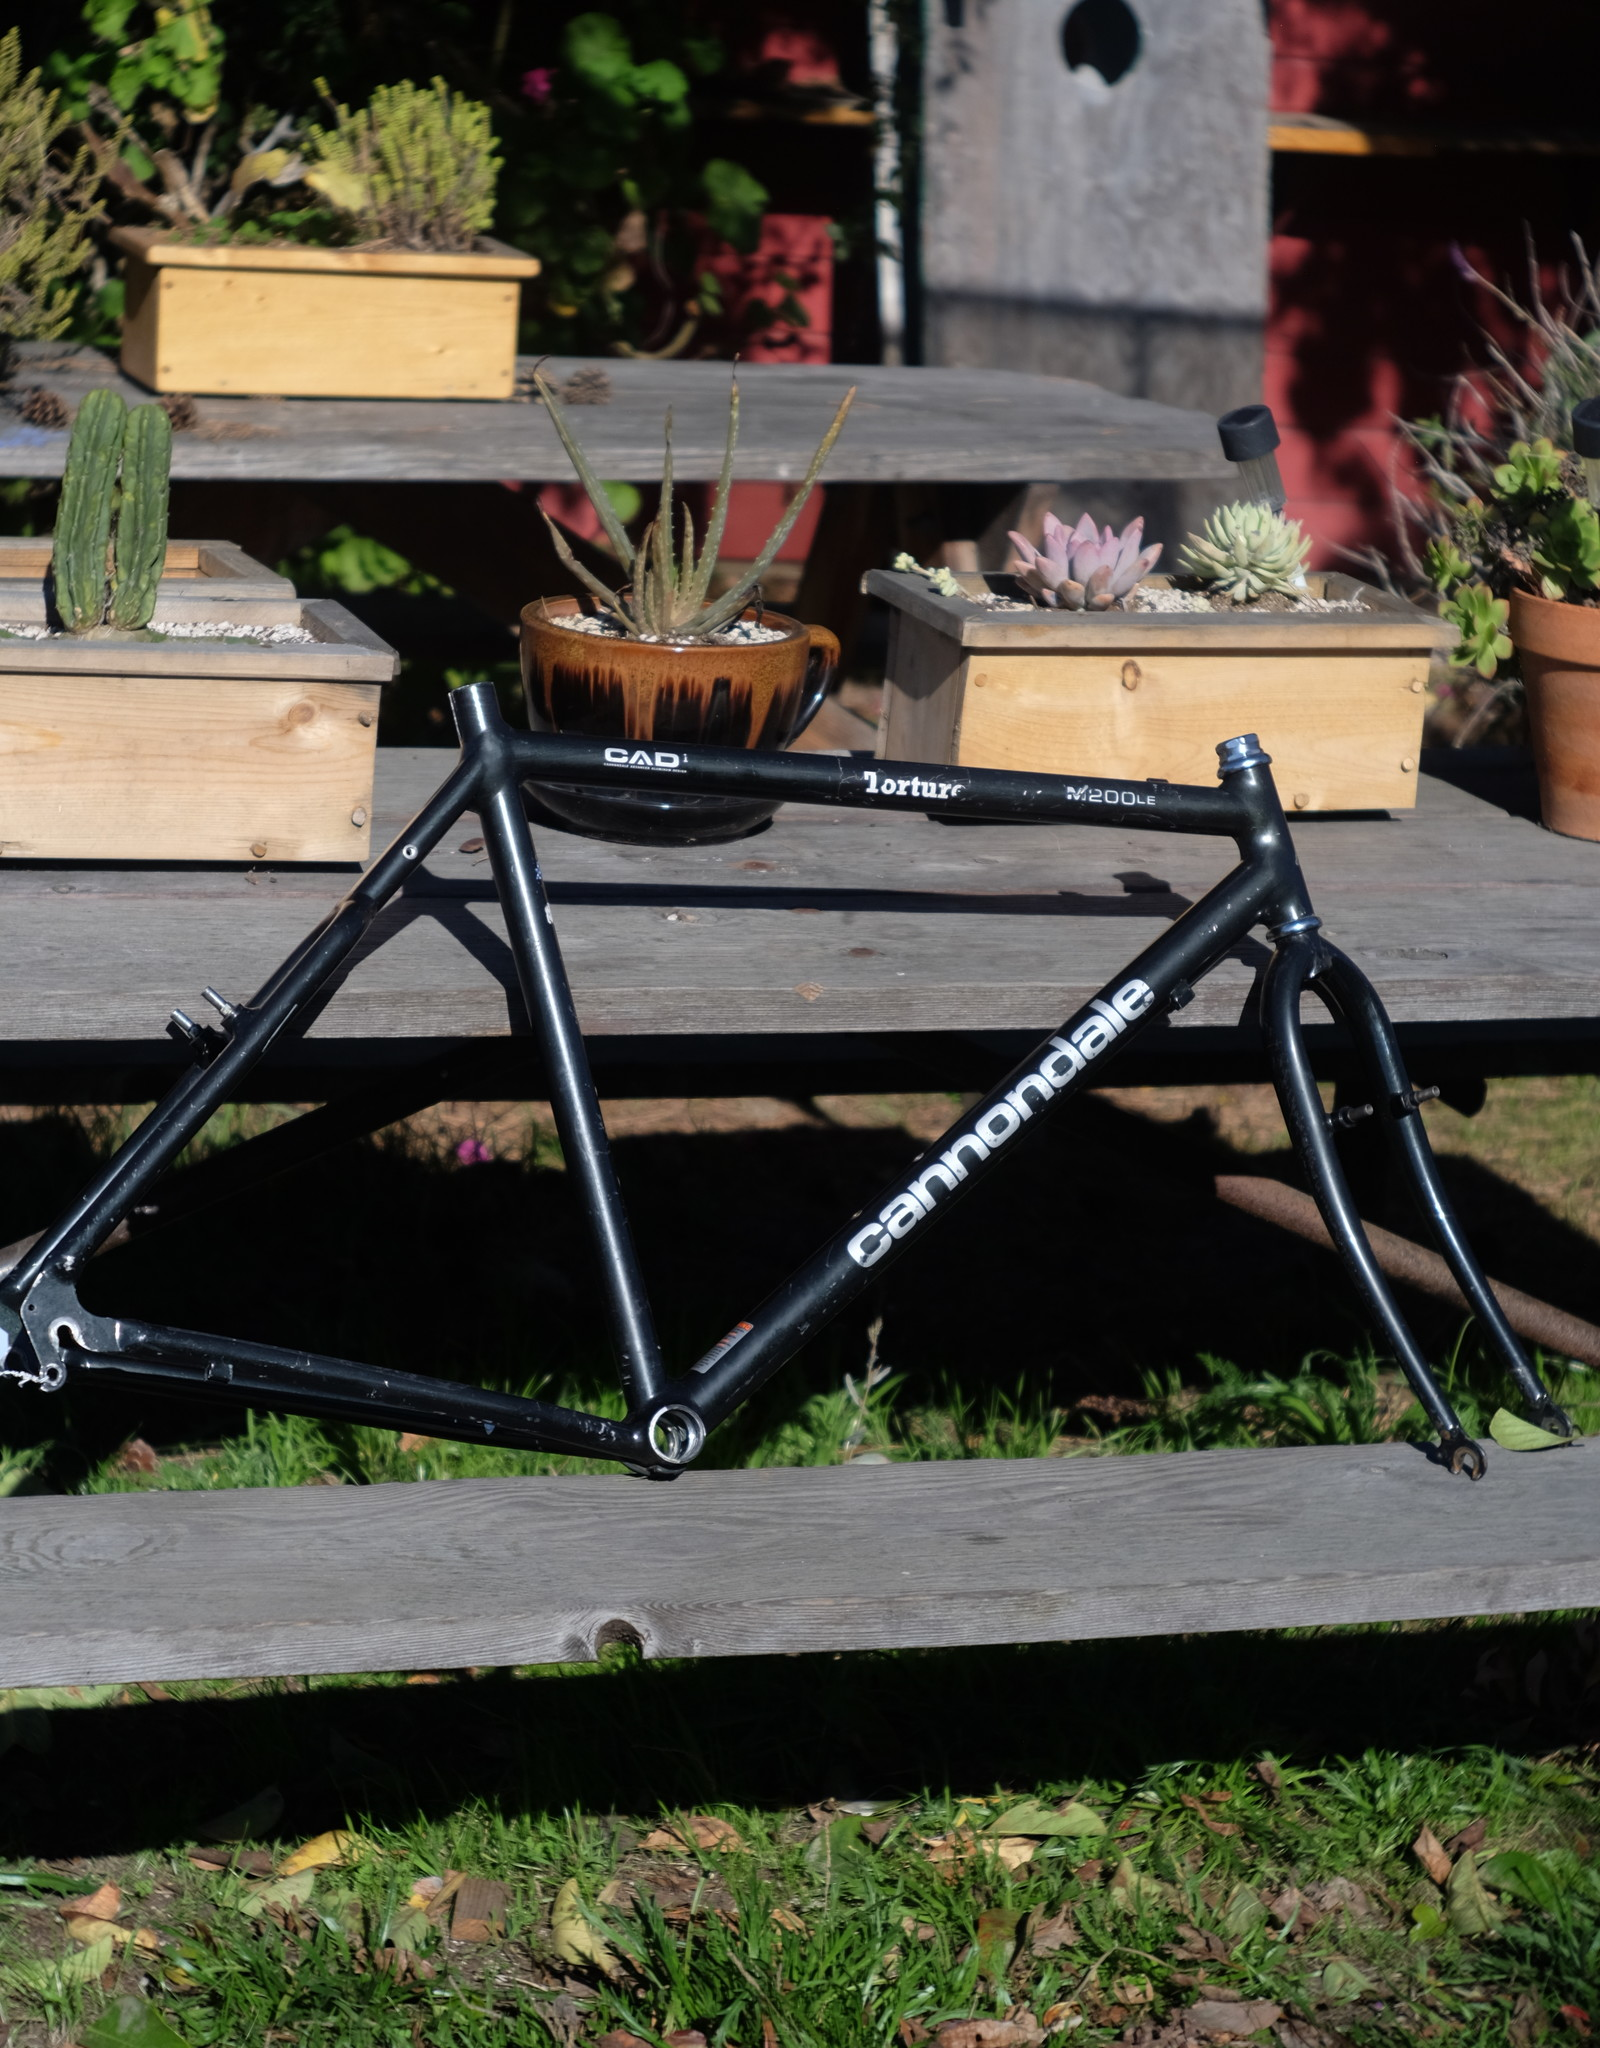 Cannondale M200LE Mountain Frame - 19in